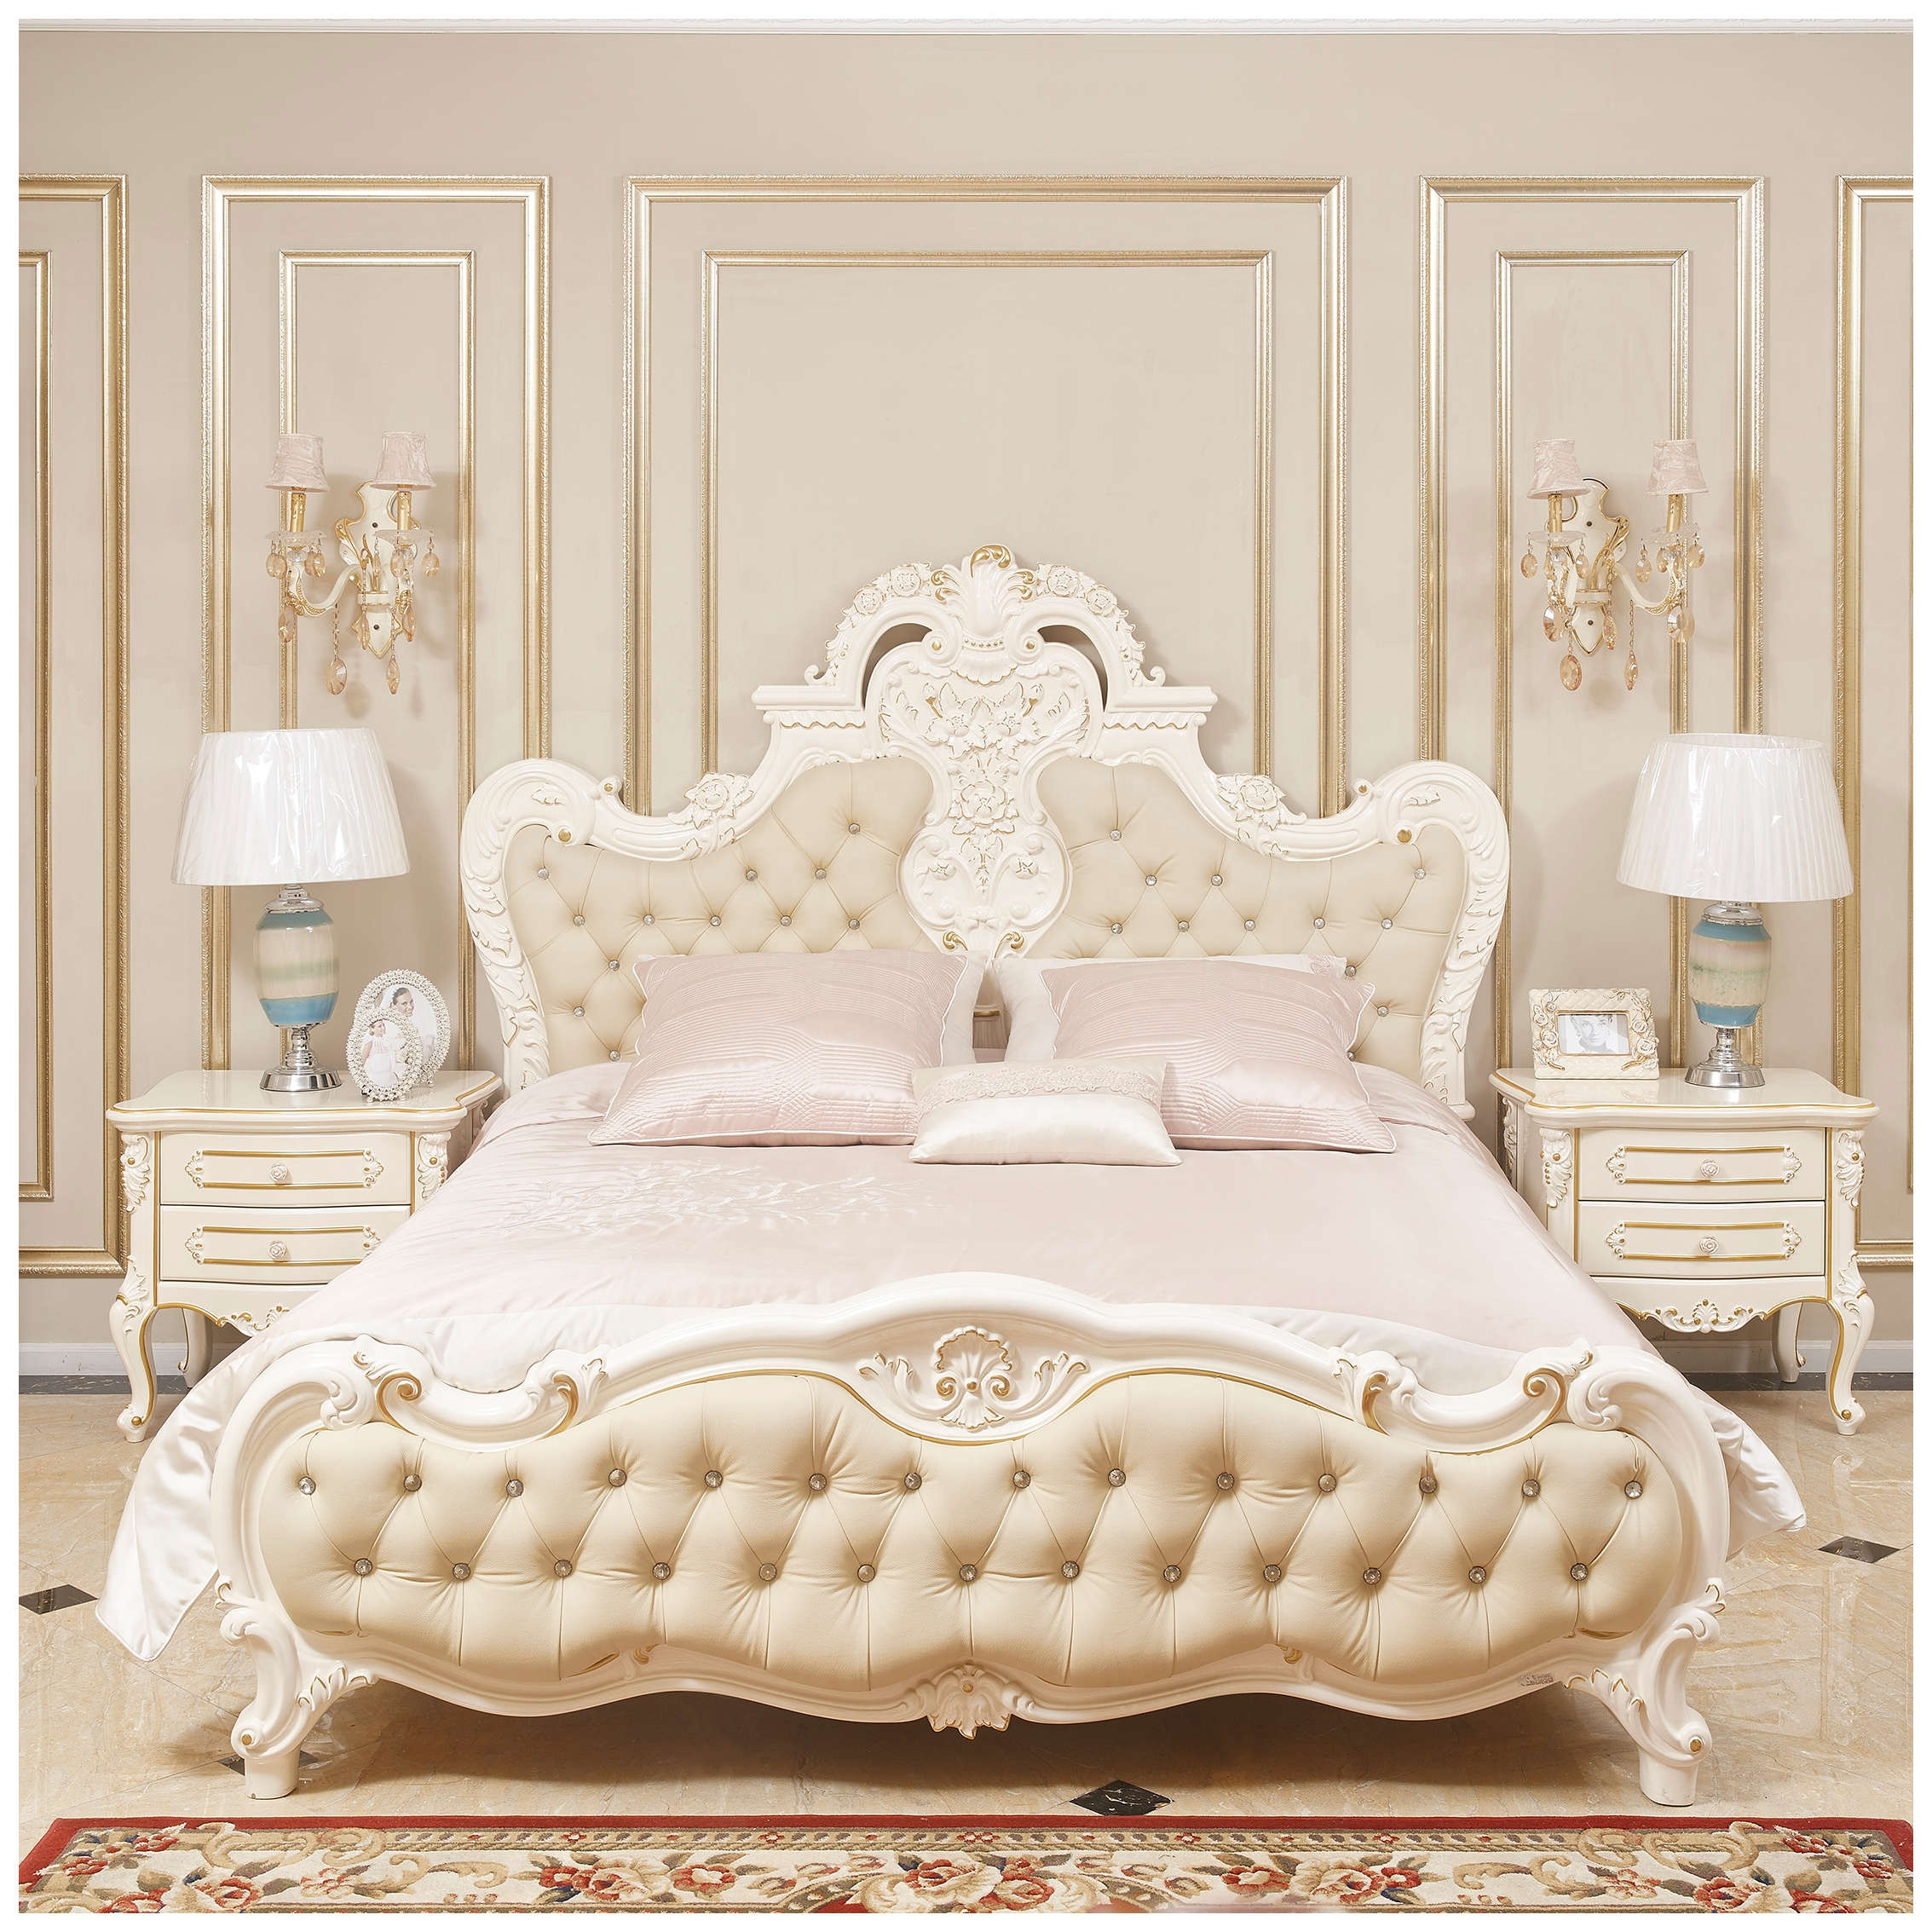 European Style Bed Furniture Antique Italian Style Bed Room Classic Furniture Buy European Style Furniture Bed Furniture Classic Furniture Product On Alibaba Com